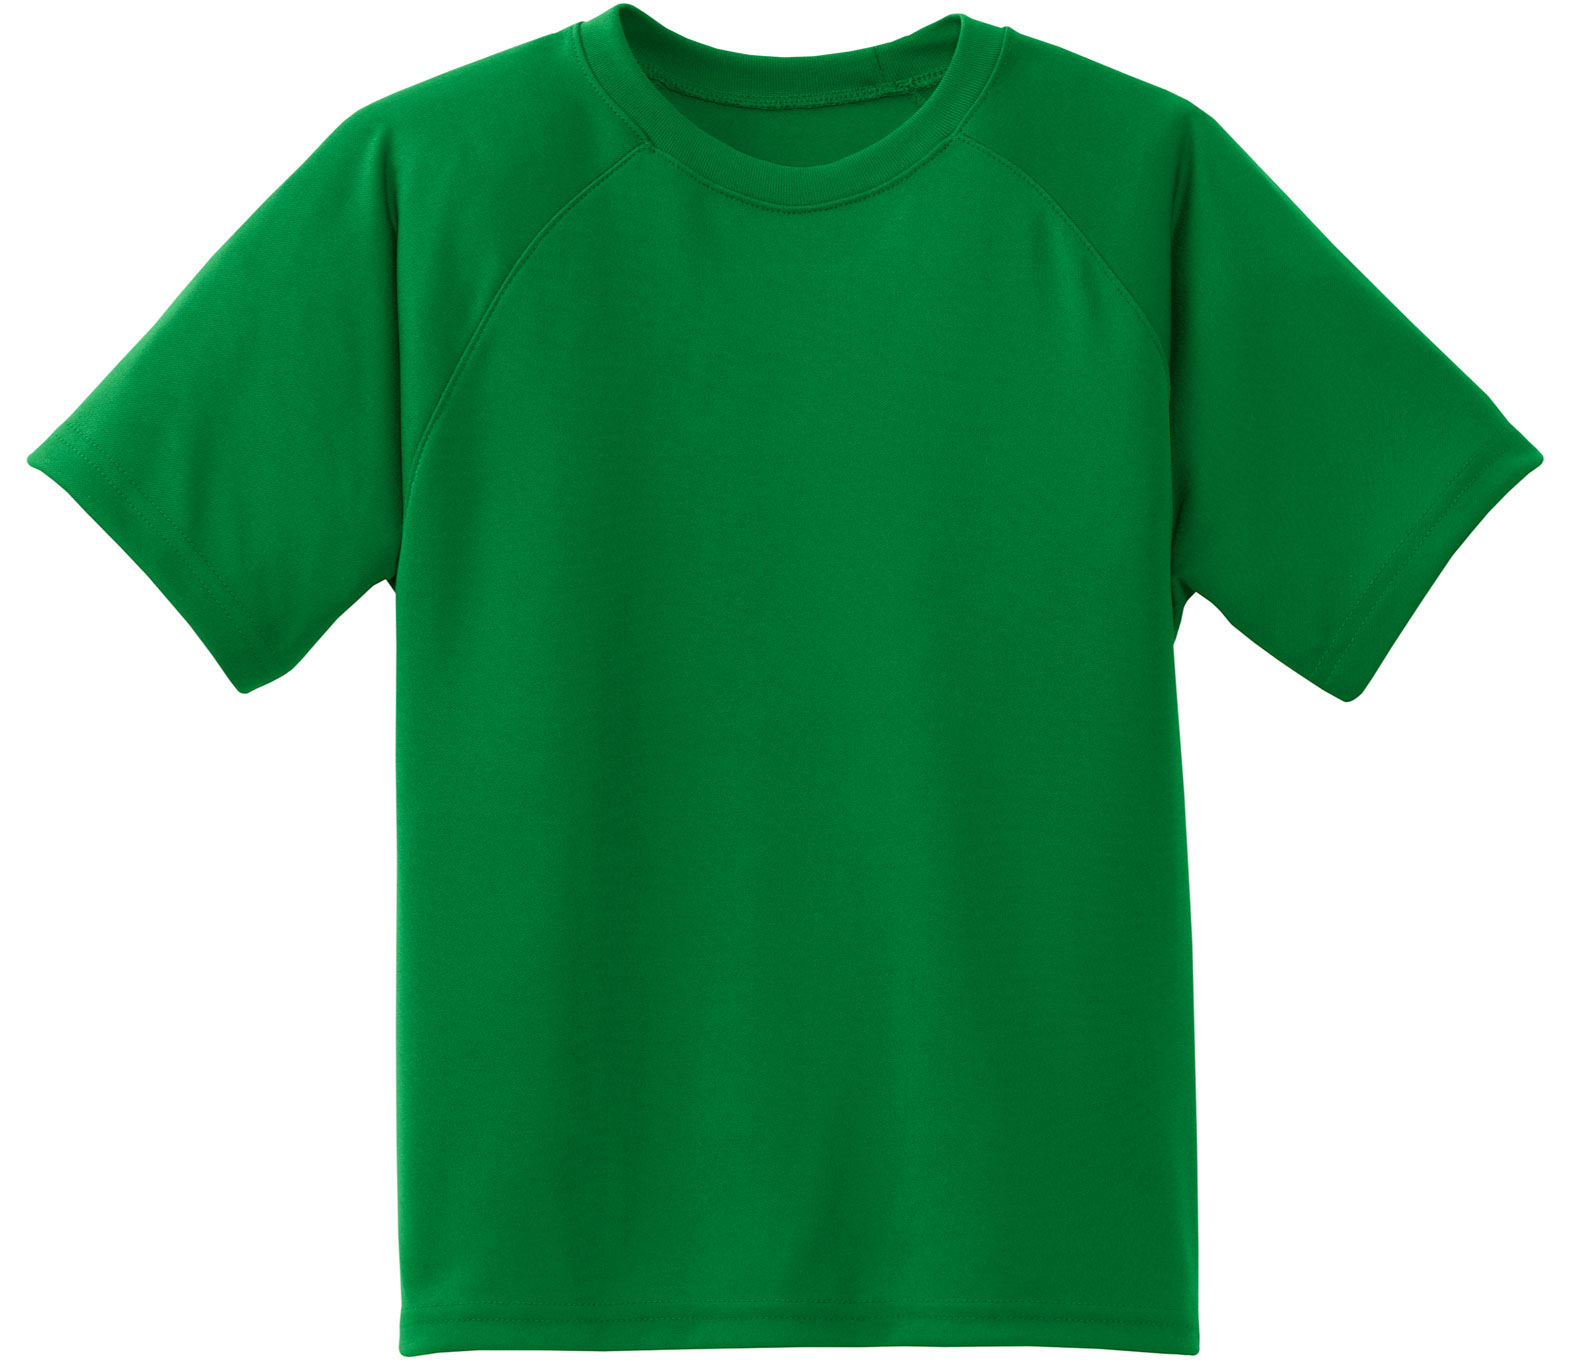 green t shirt template clipart best. Black Bedroom Furniture Sets. Home Design Ideas